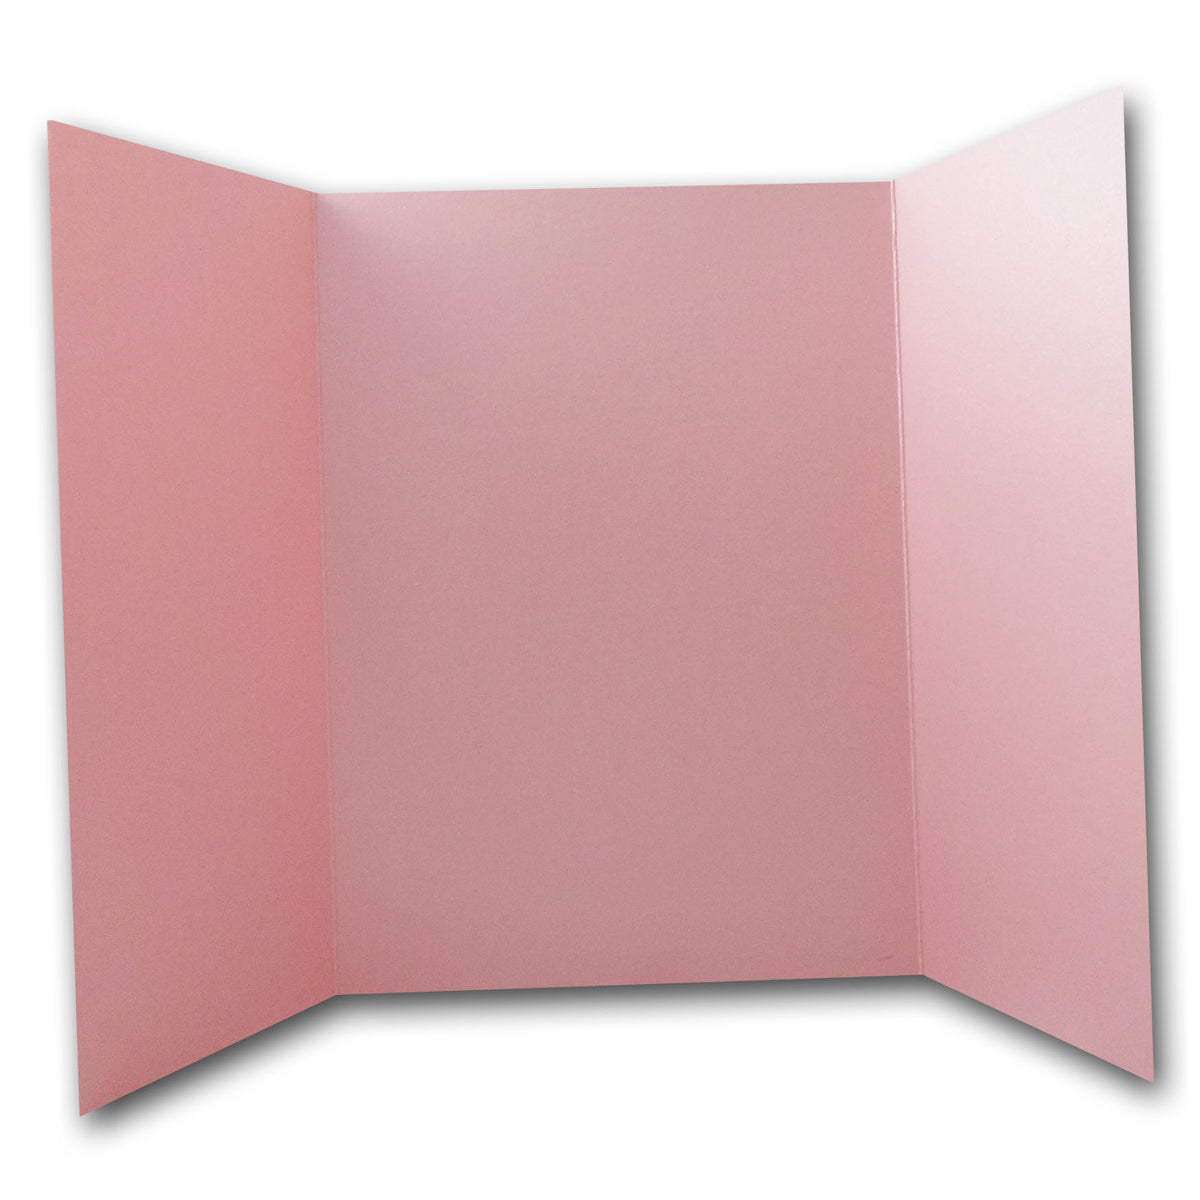 Shimmery Pink 5x7 Gatefold Discount Card Stock DIY Invitations